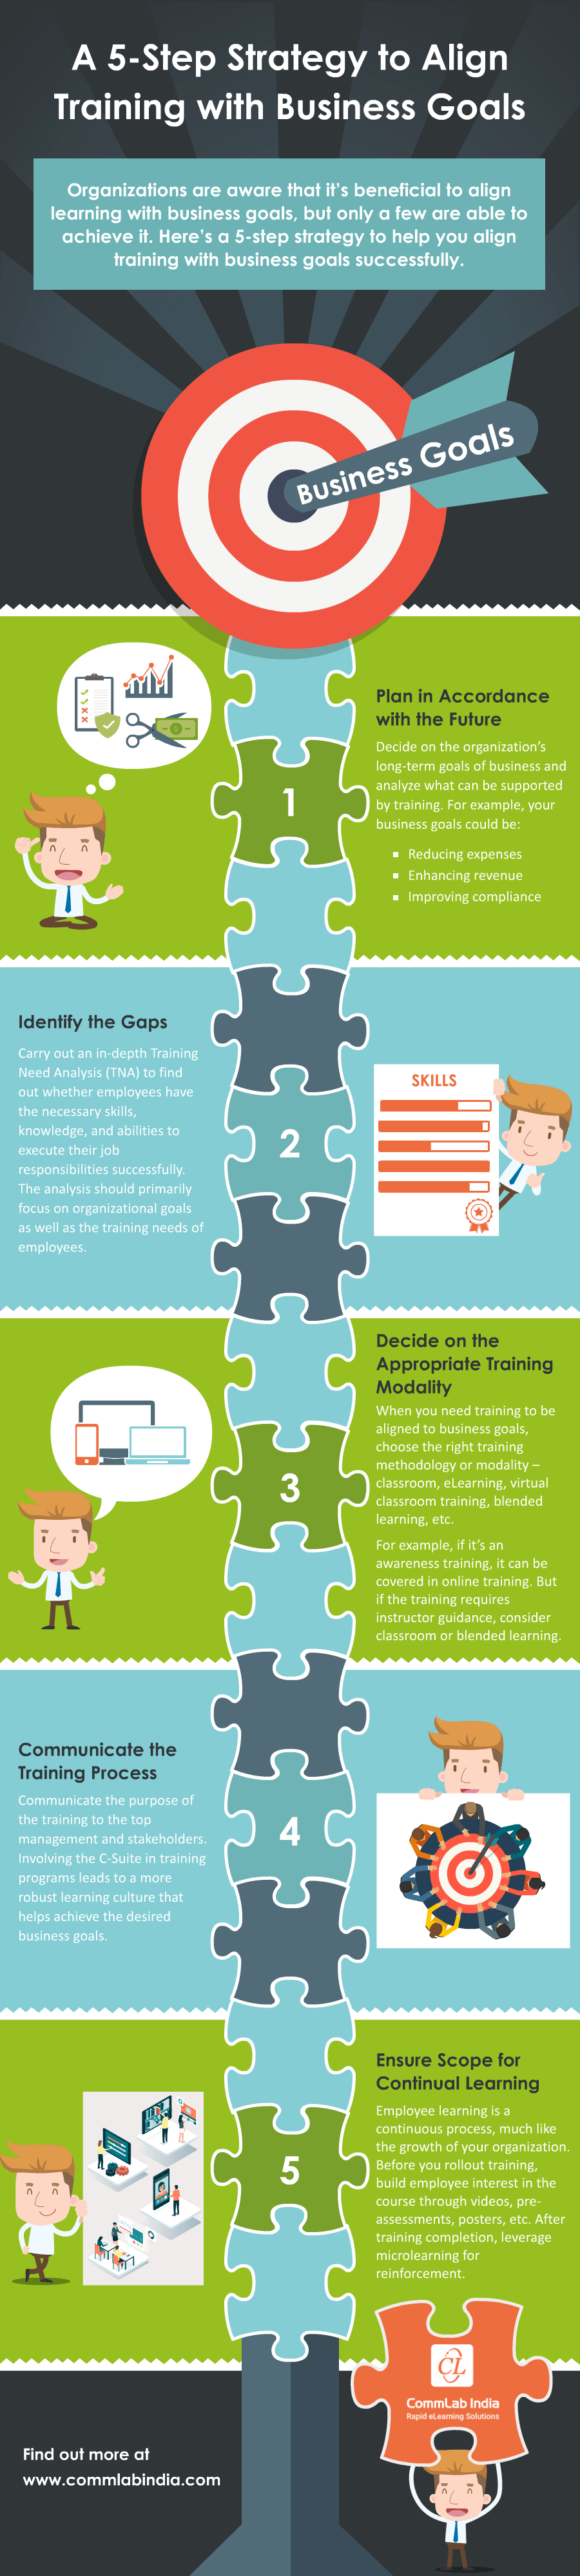 A 5-Step Strategy to Align Training with Business Goals [Infographic]